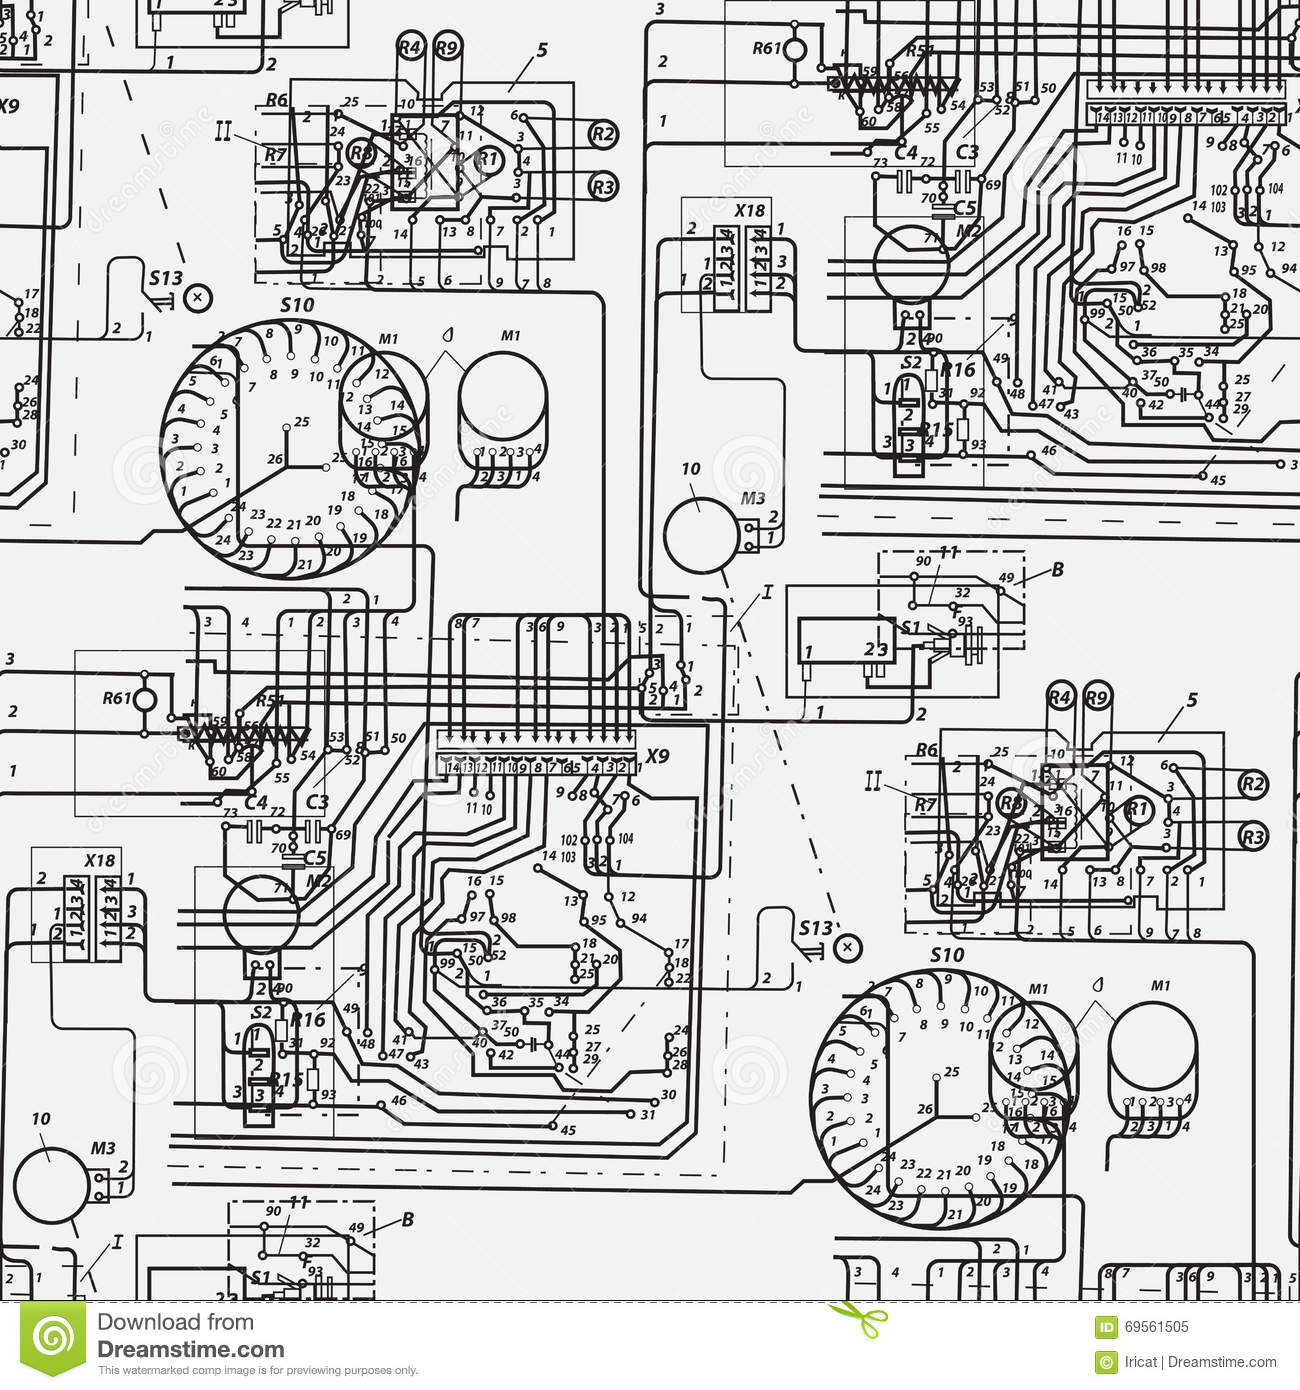 Electrical Engineering Diagram – Create An Electrical Engineering